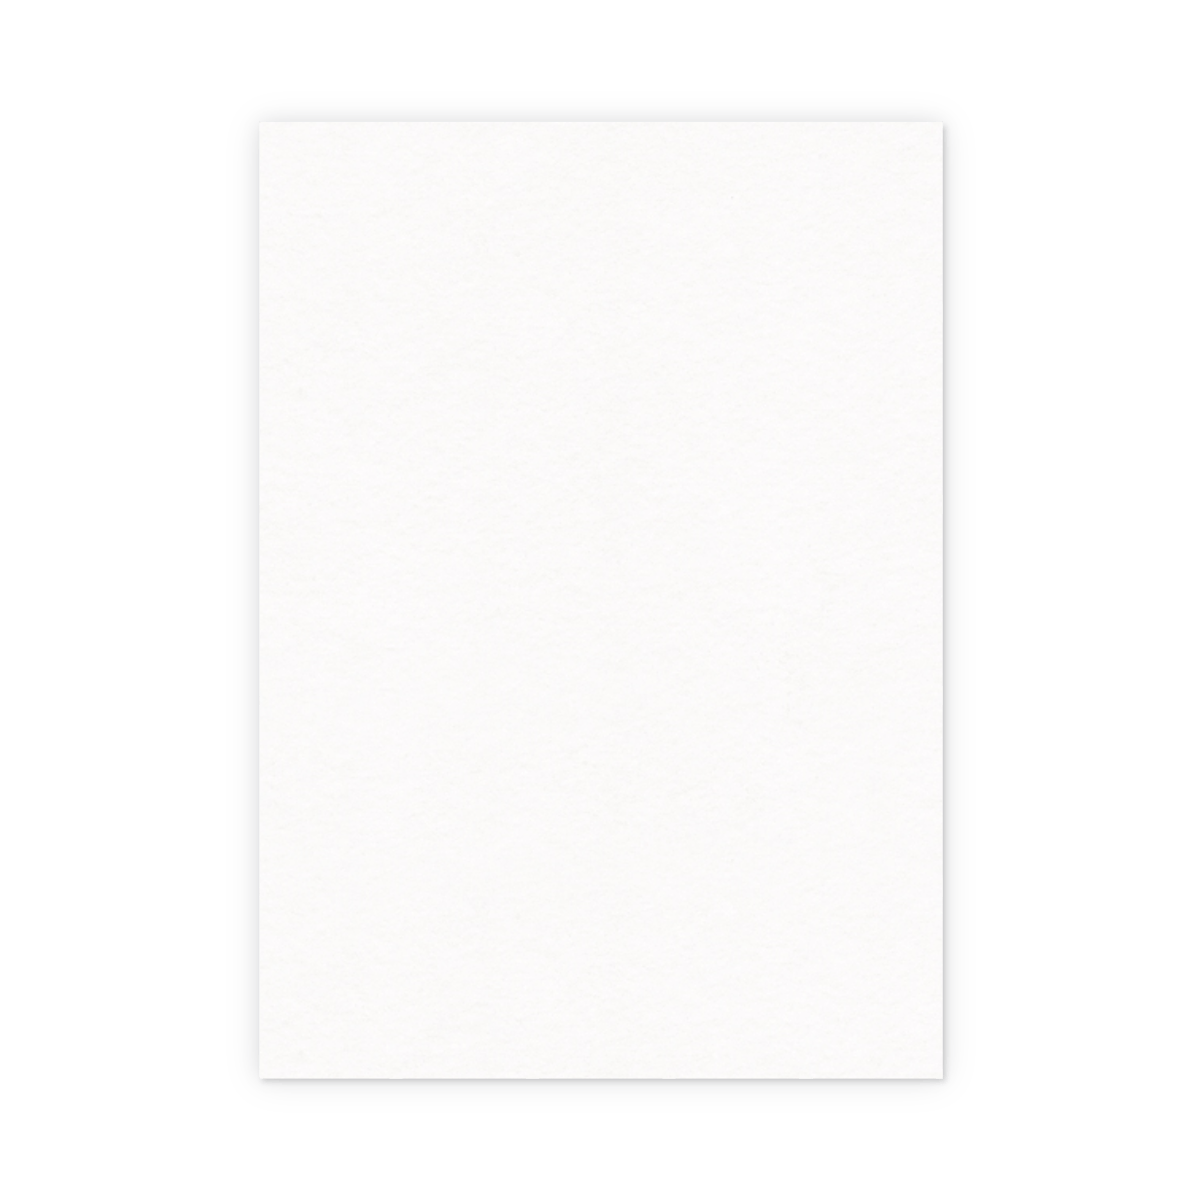 Https%3a%2f%2fwww.papier.com%2fproduct image%2f69080%2f4%2fclassic thin border 16329 back 1552932407.png?ixlib=rb 1.1